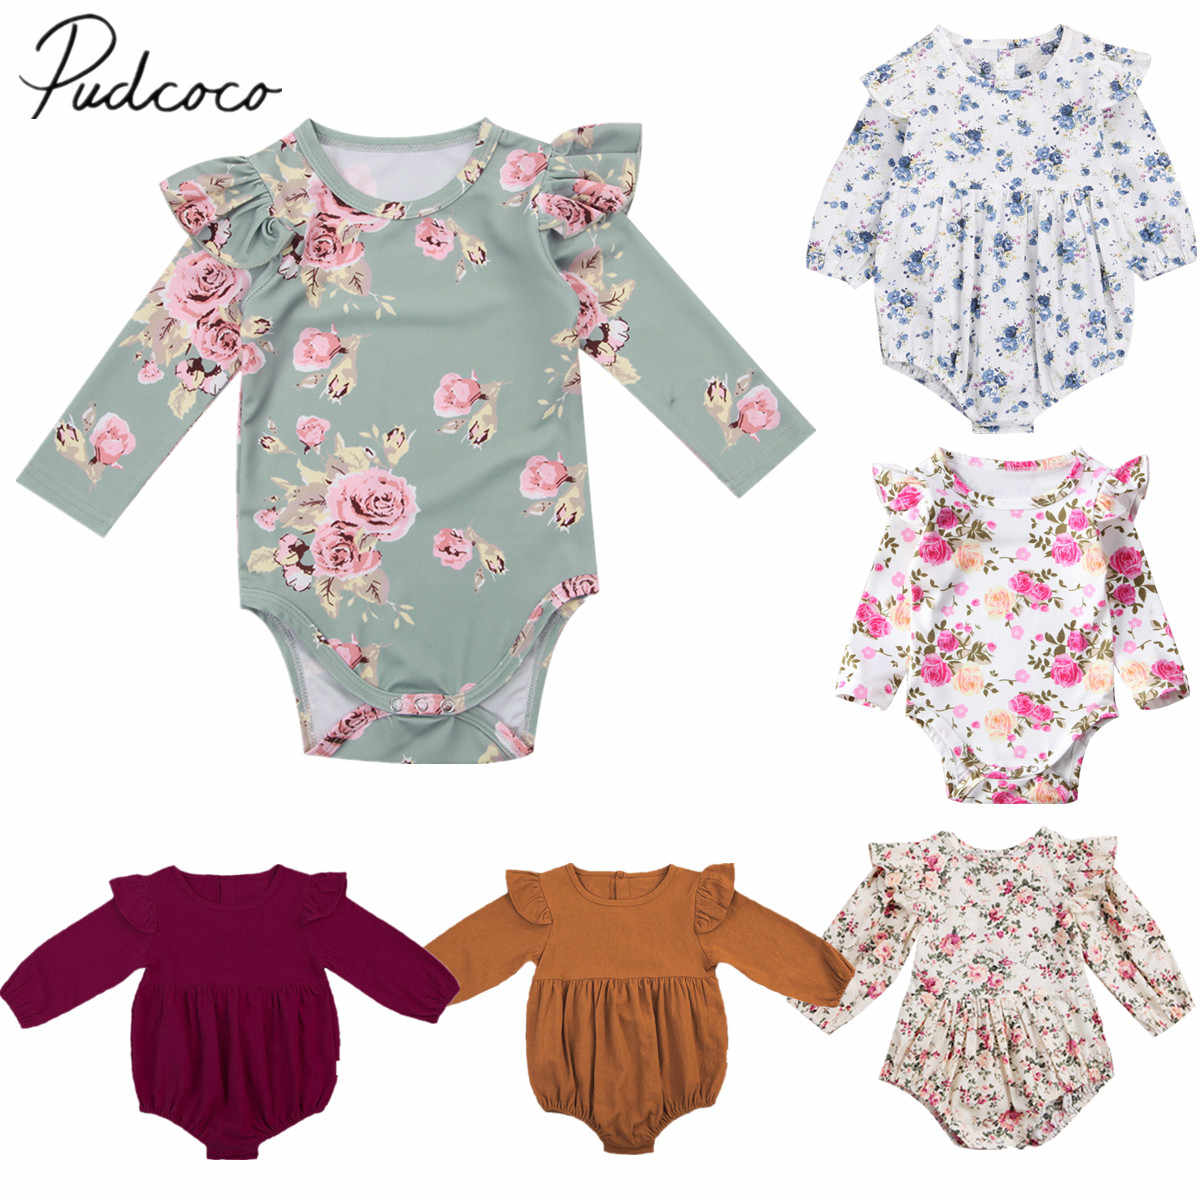 8e514c4d3 Detail Feedback Questions about 2018 Brand New Toddler Infant ...